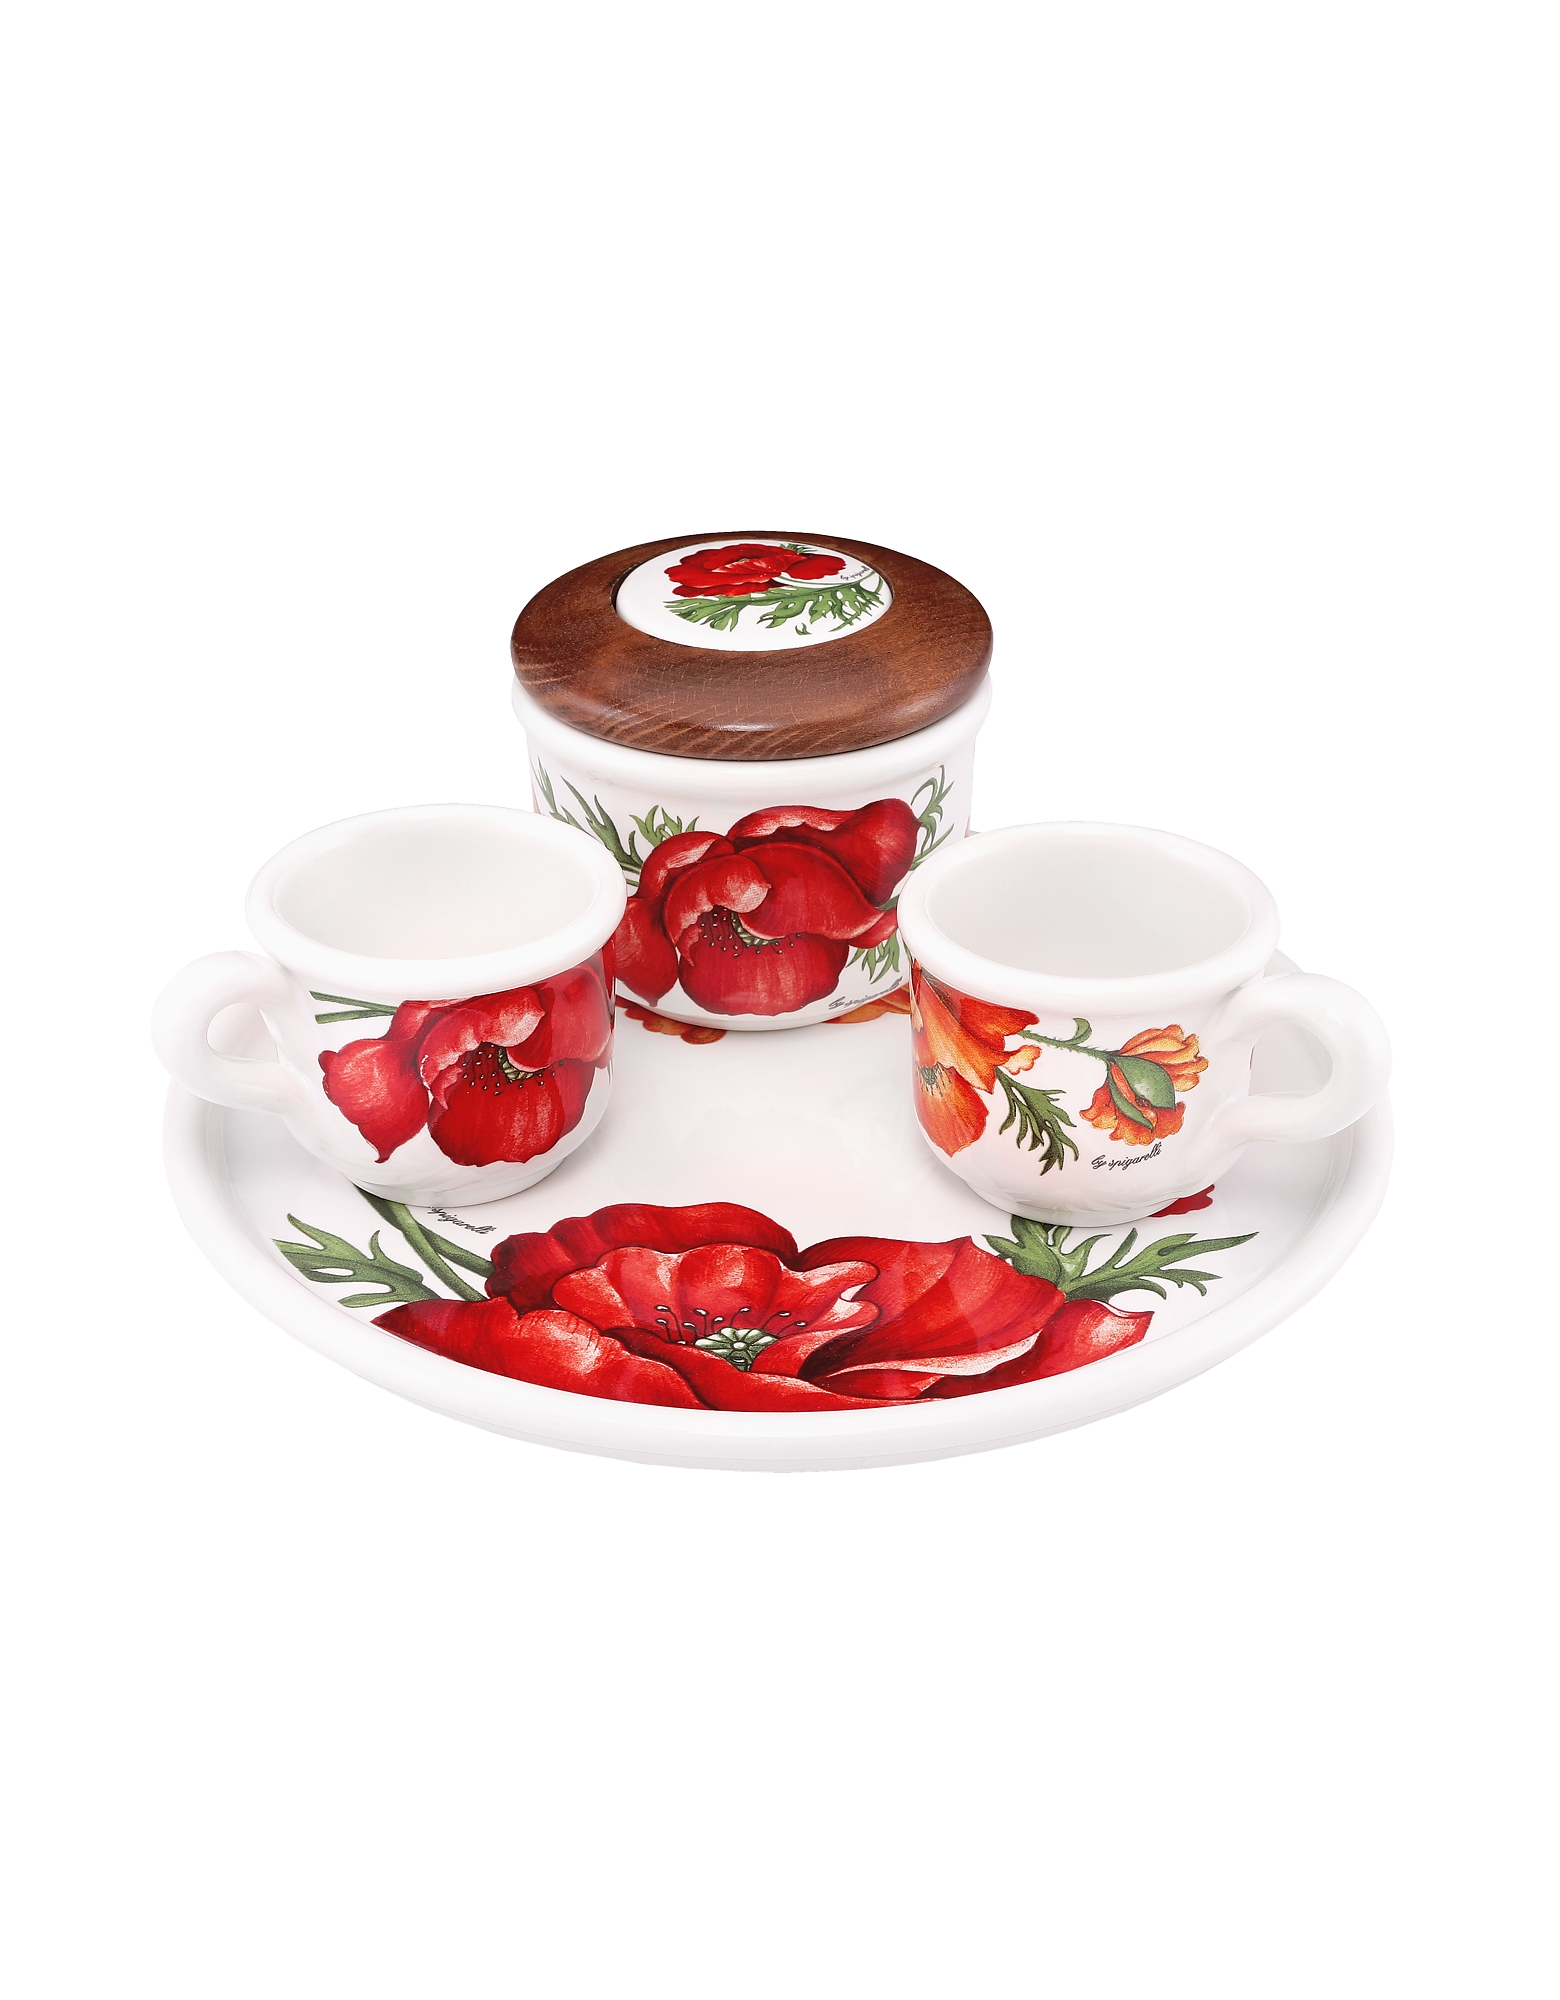 Image of Spigarelli Designer Kitchen & Dining, Sugar and Mocha Cups Poppy Ceramic Set w/Tray